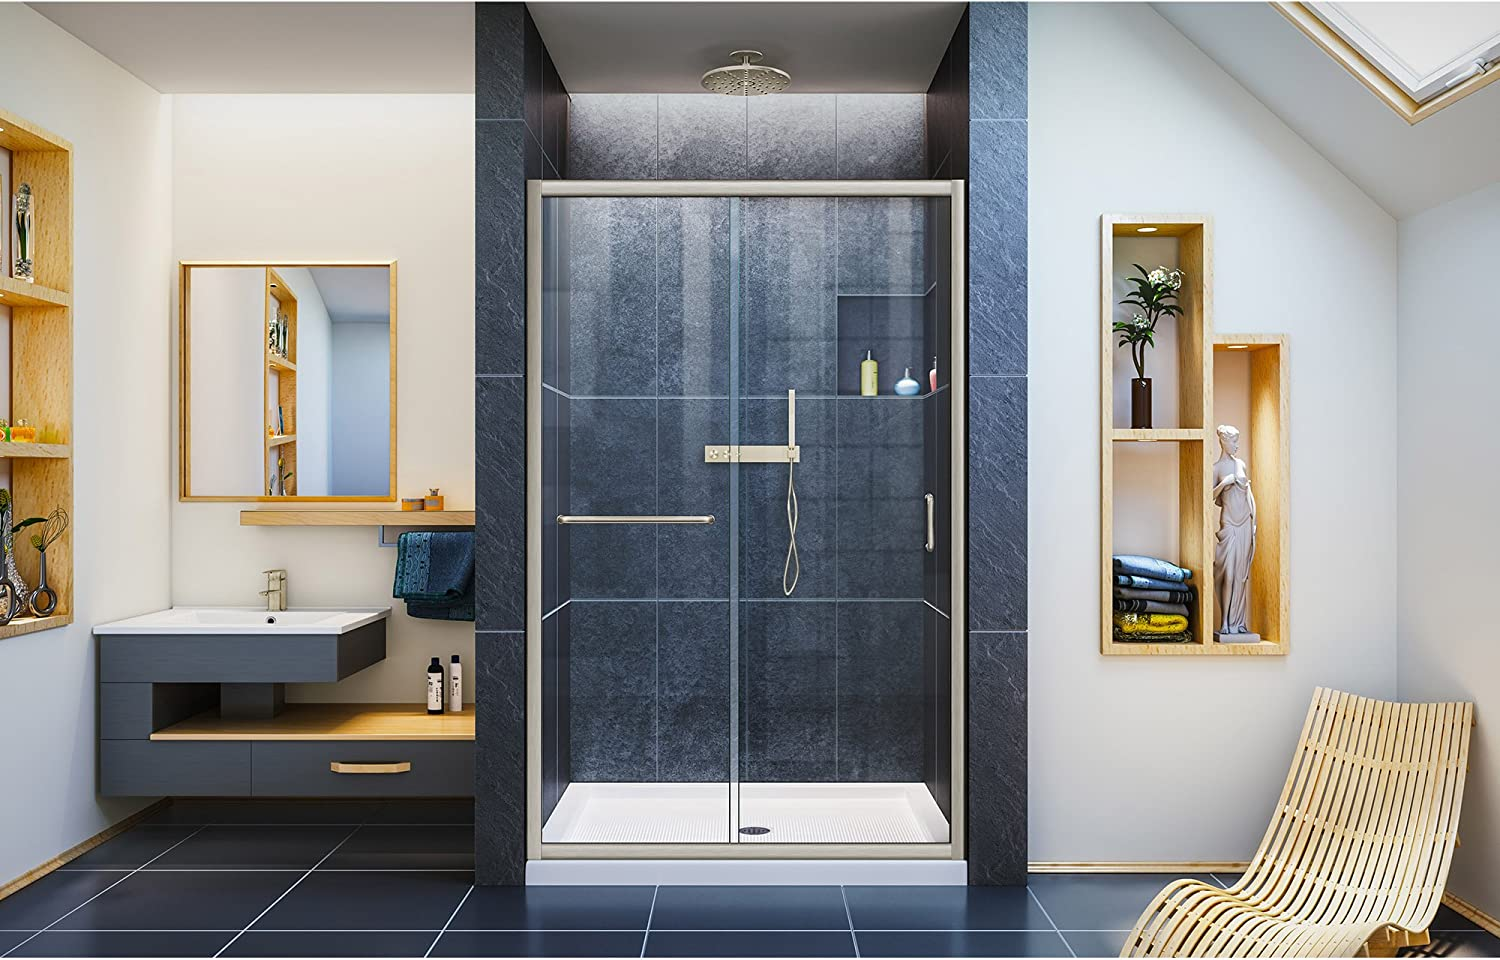 Dreamline Infinity Z Semi Frameless Sliding Shower Door For Openings From 44 Up To 48 Clear Glass In Brushed Nickel Shdr 0948720 04 Bathtub Sliding Doors Amazon Com